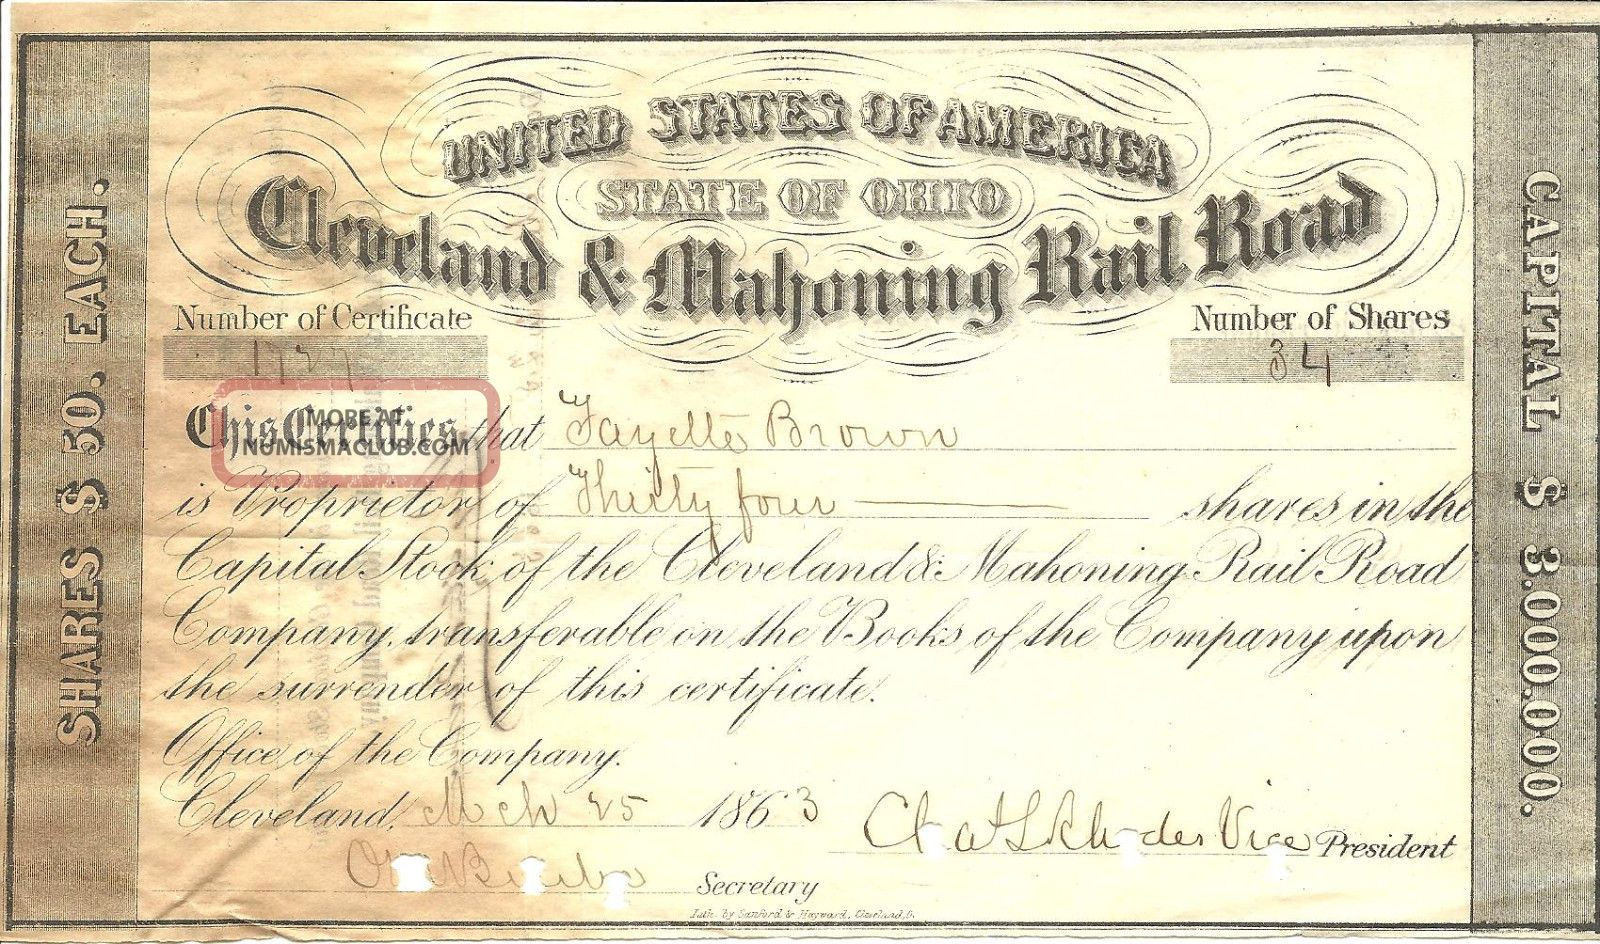 1863 Civil War,  Railroad Stock Certificate From Ohio,  Cleveland & Mahoning Rr Transportation photo